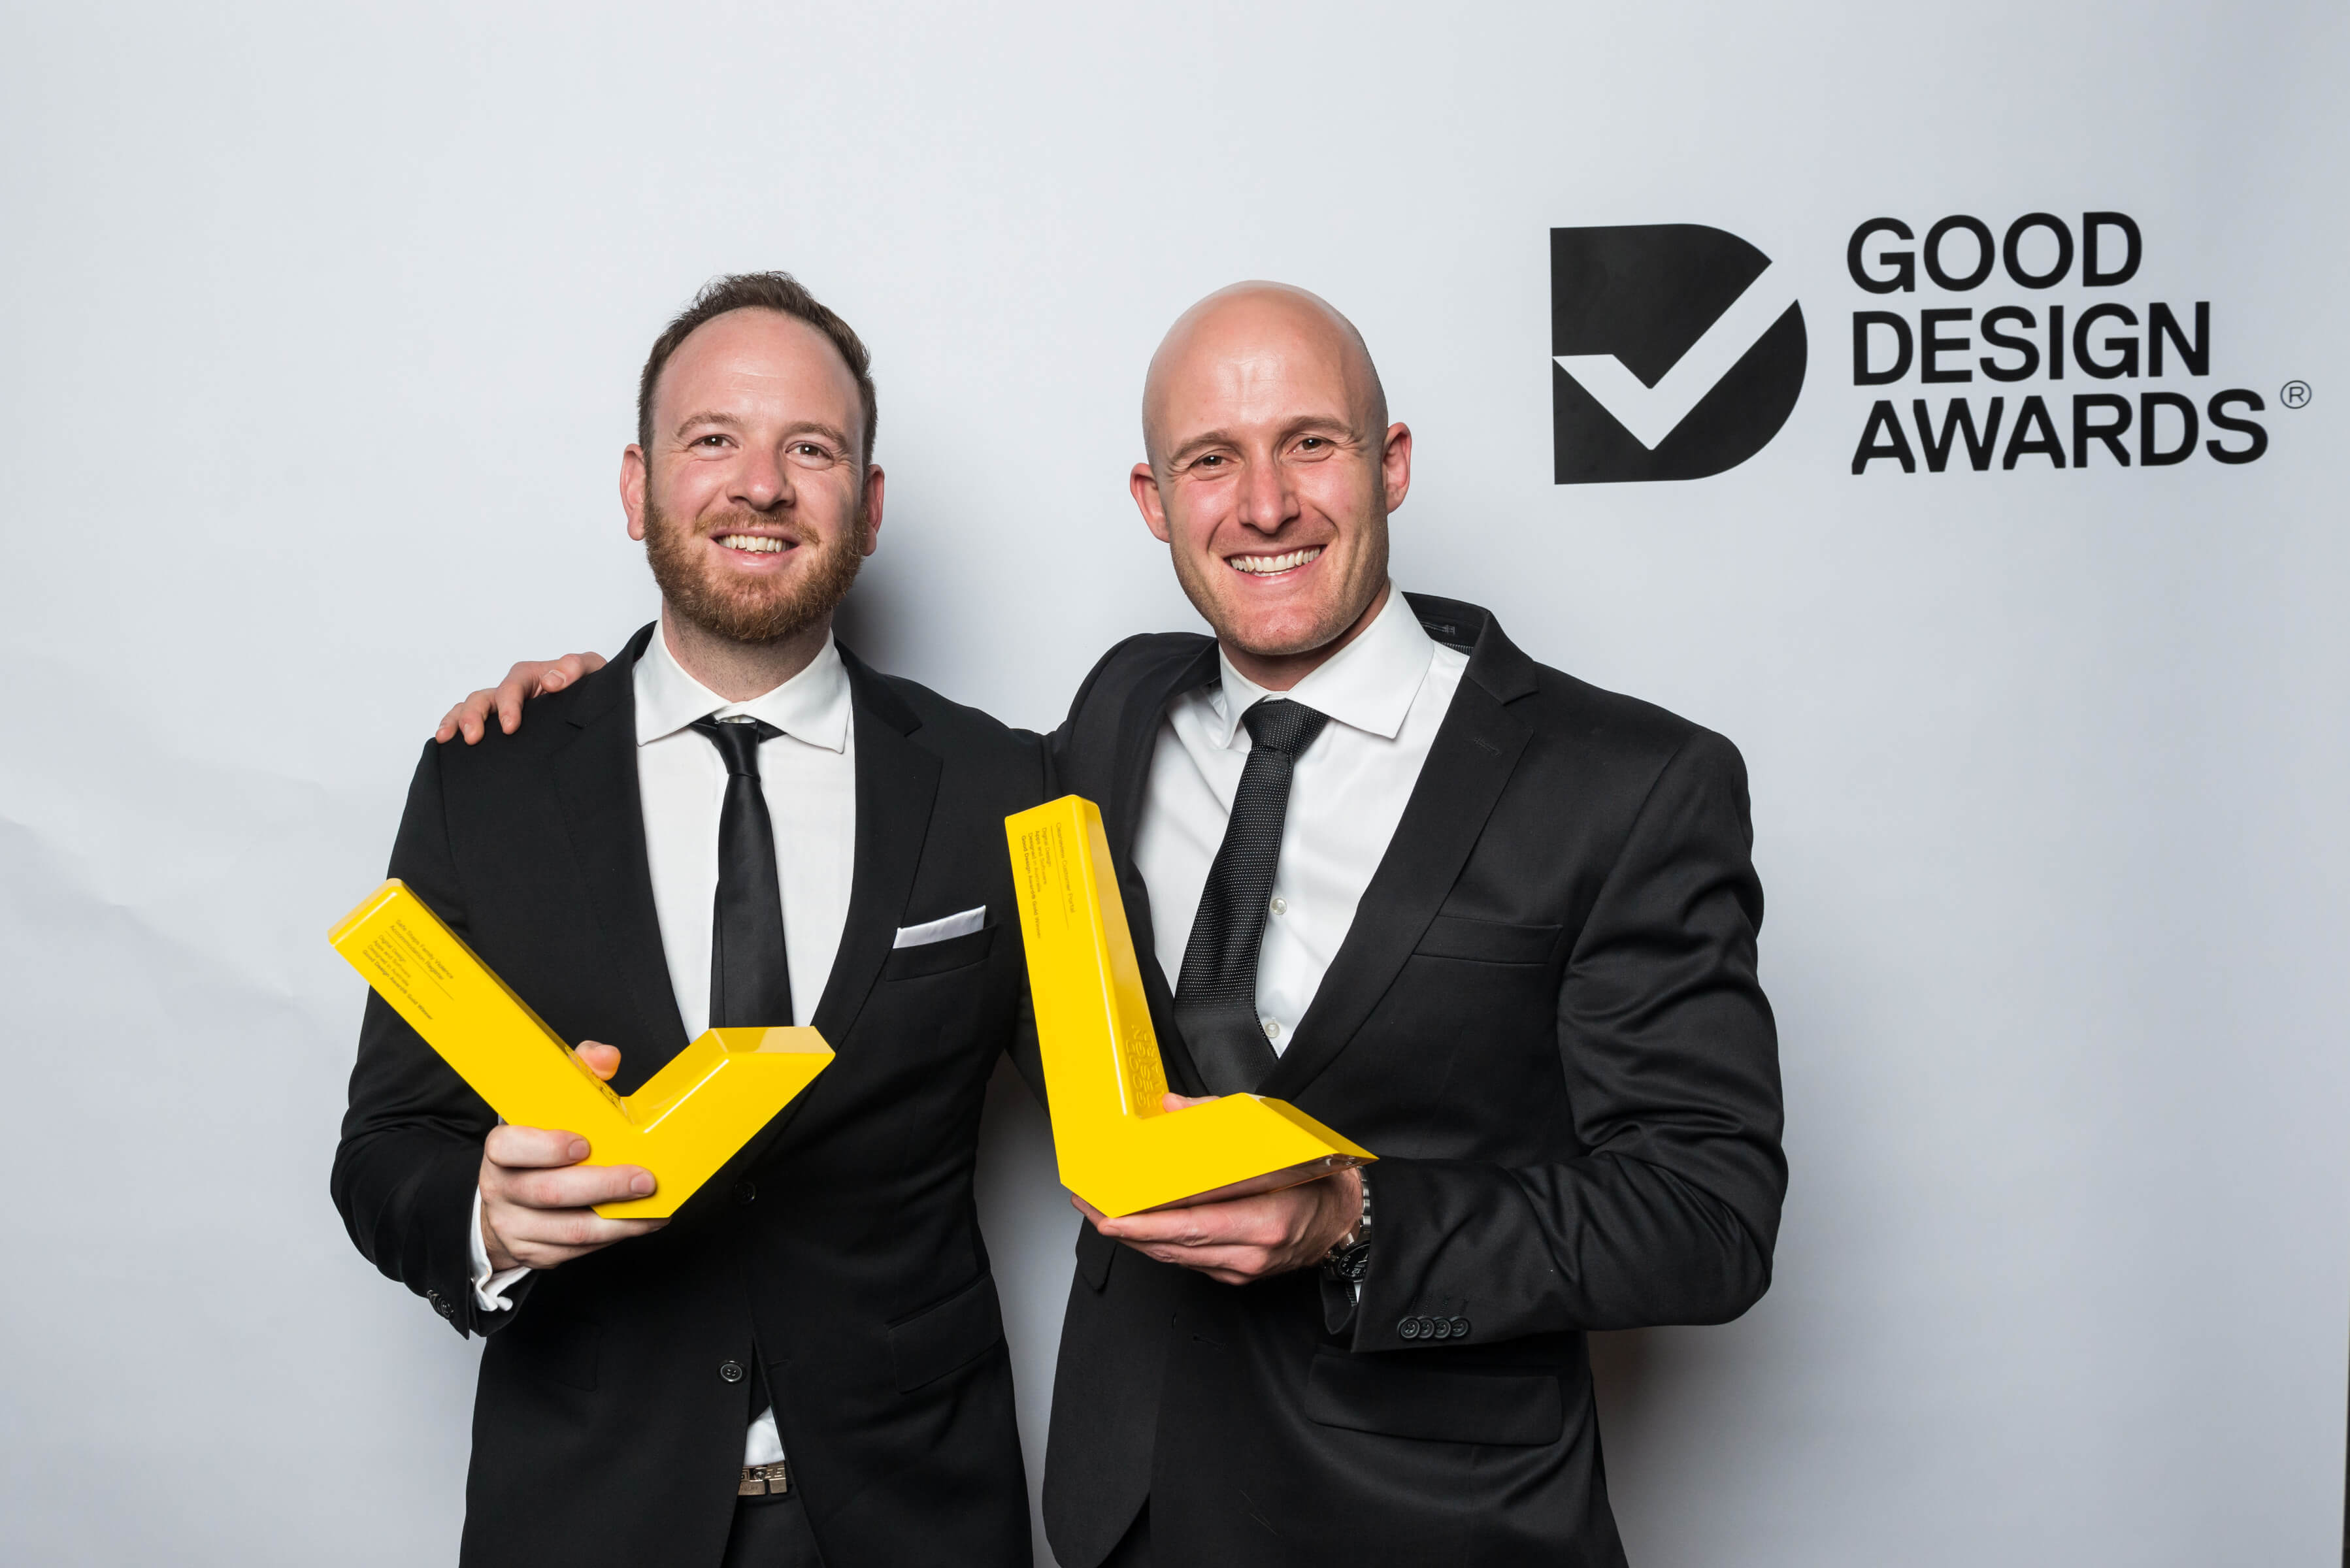 Accepting the Good Design Awards for Cleanaview